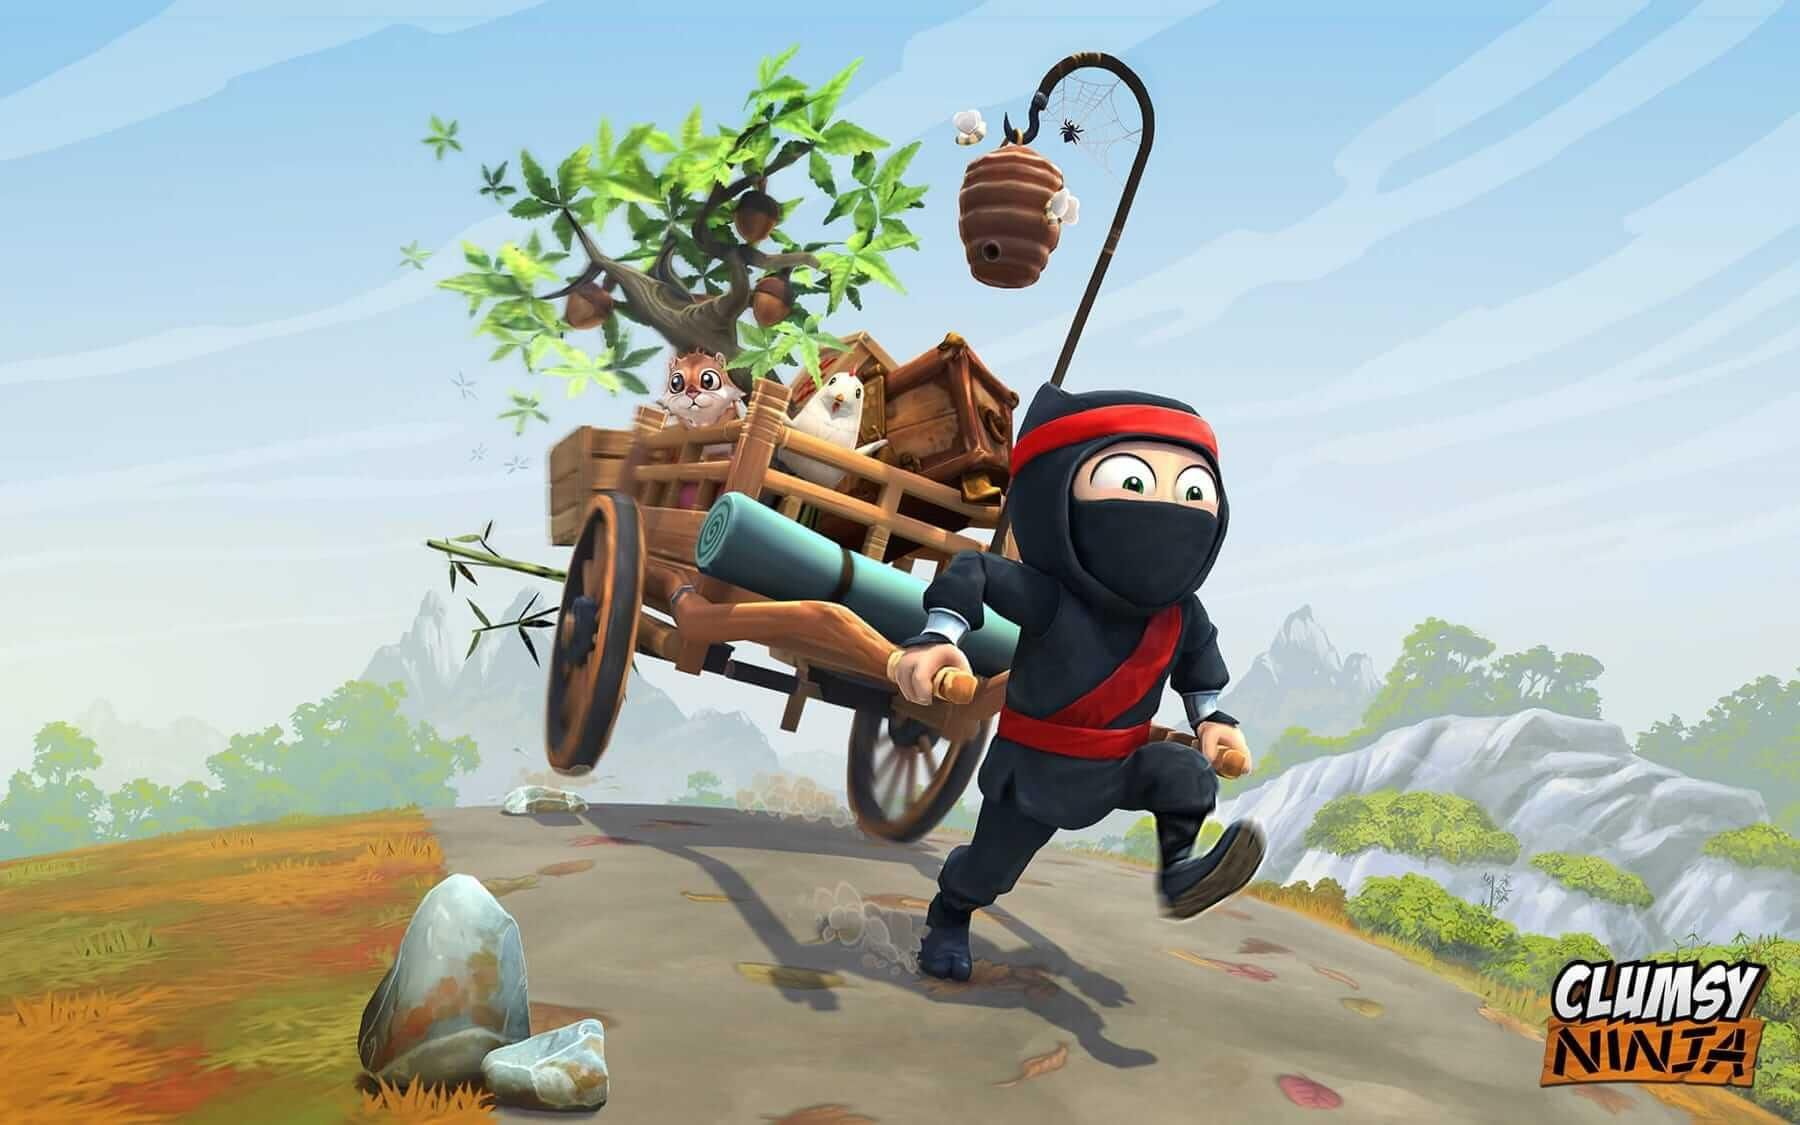 Clumsy Ninja Hack Online Cheat For Generating Unlimited